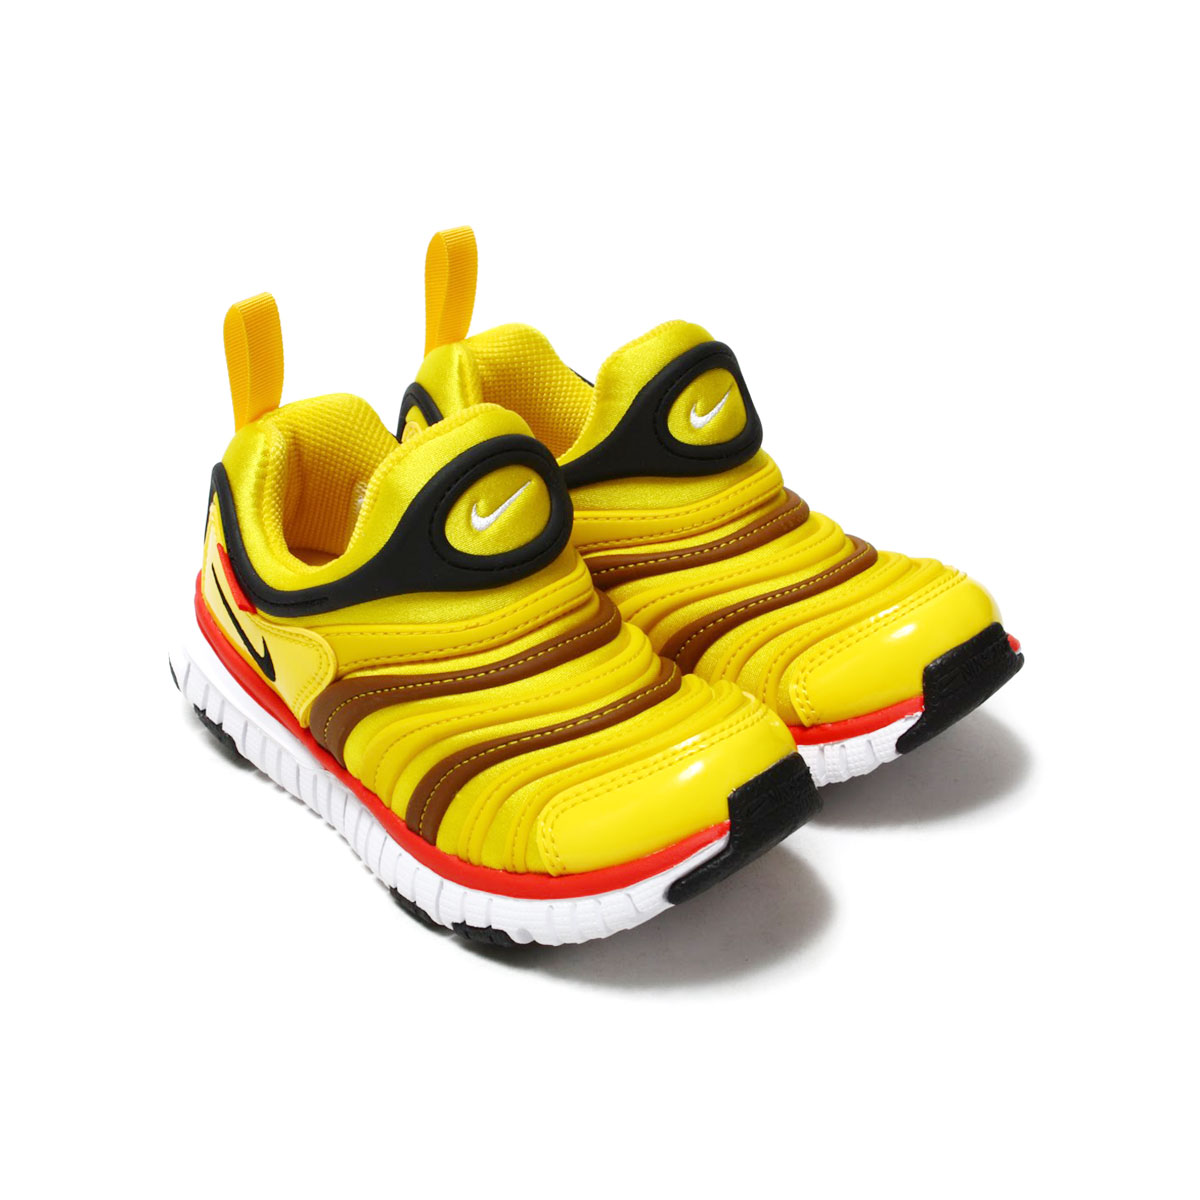 NIKE DYNAMO FREE (PS)(ナイキ ダイナモ フリー PS)TOUR YELLOW/BLACK-SPEED RED-ALE BROWN【キッズ スニーカー】18SP-I